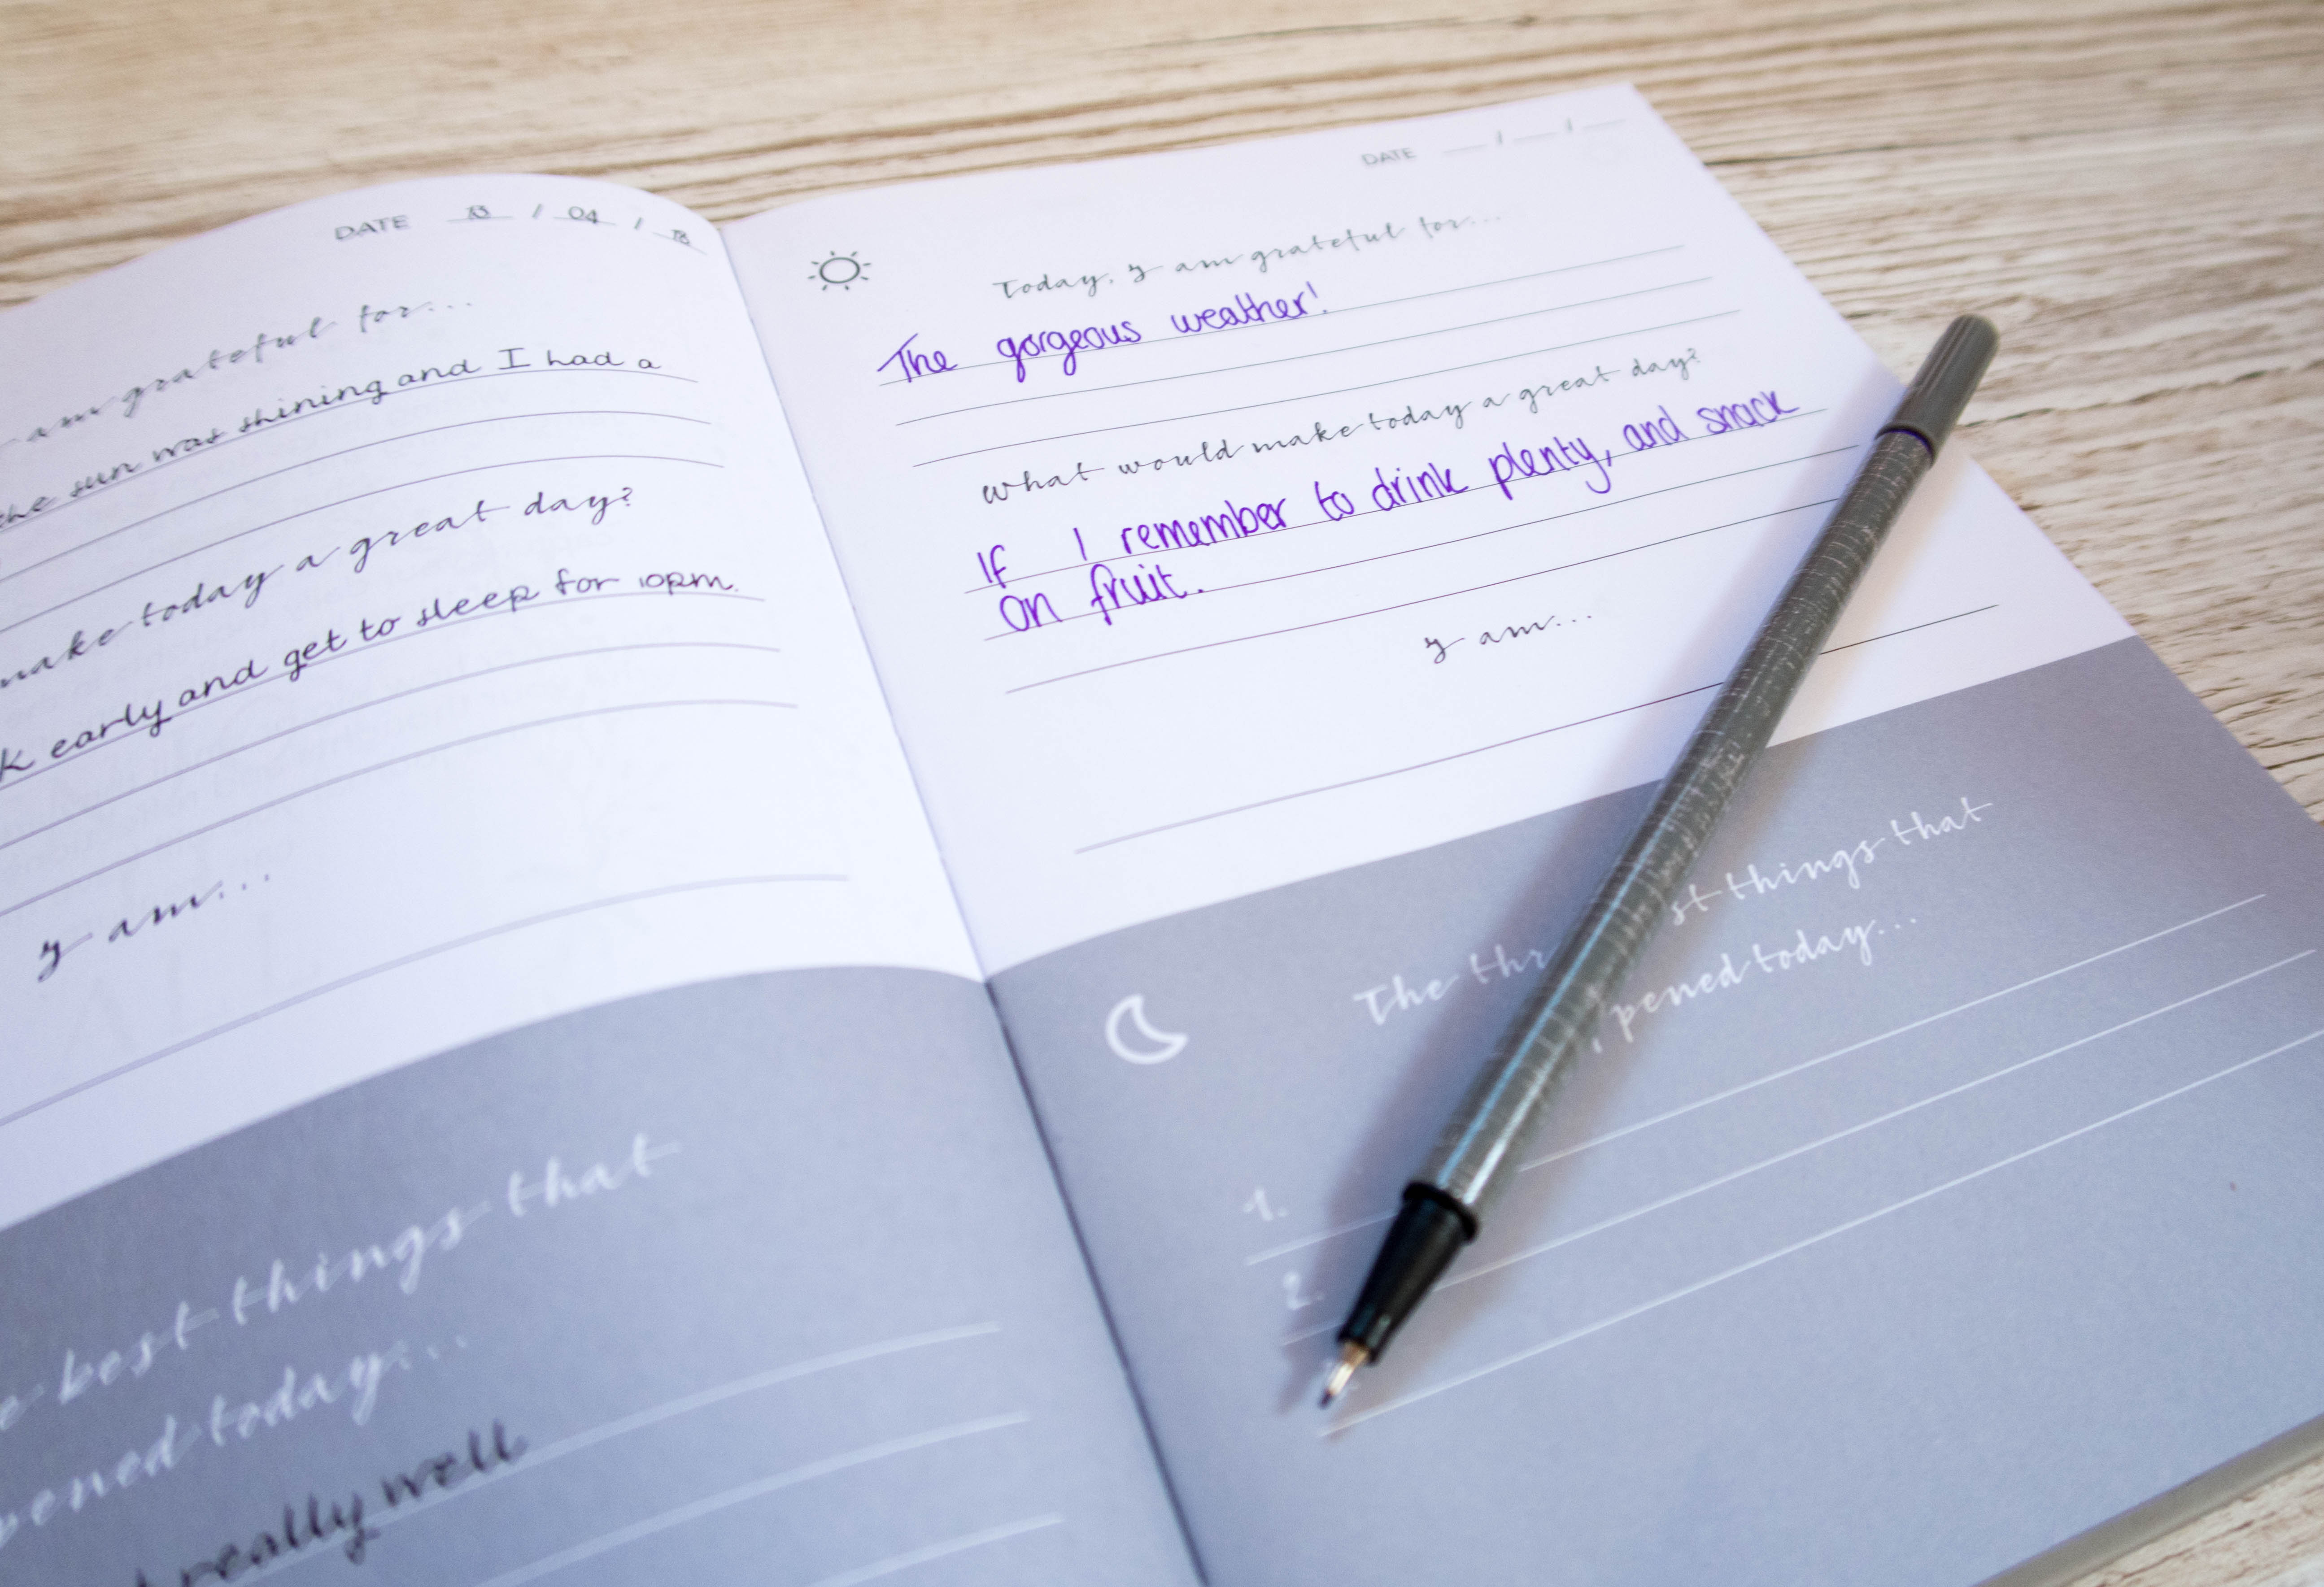 Mindful journal